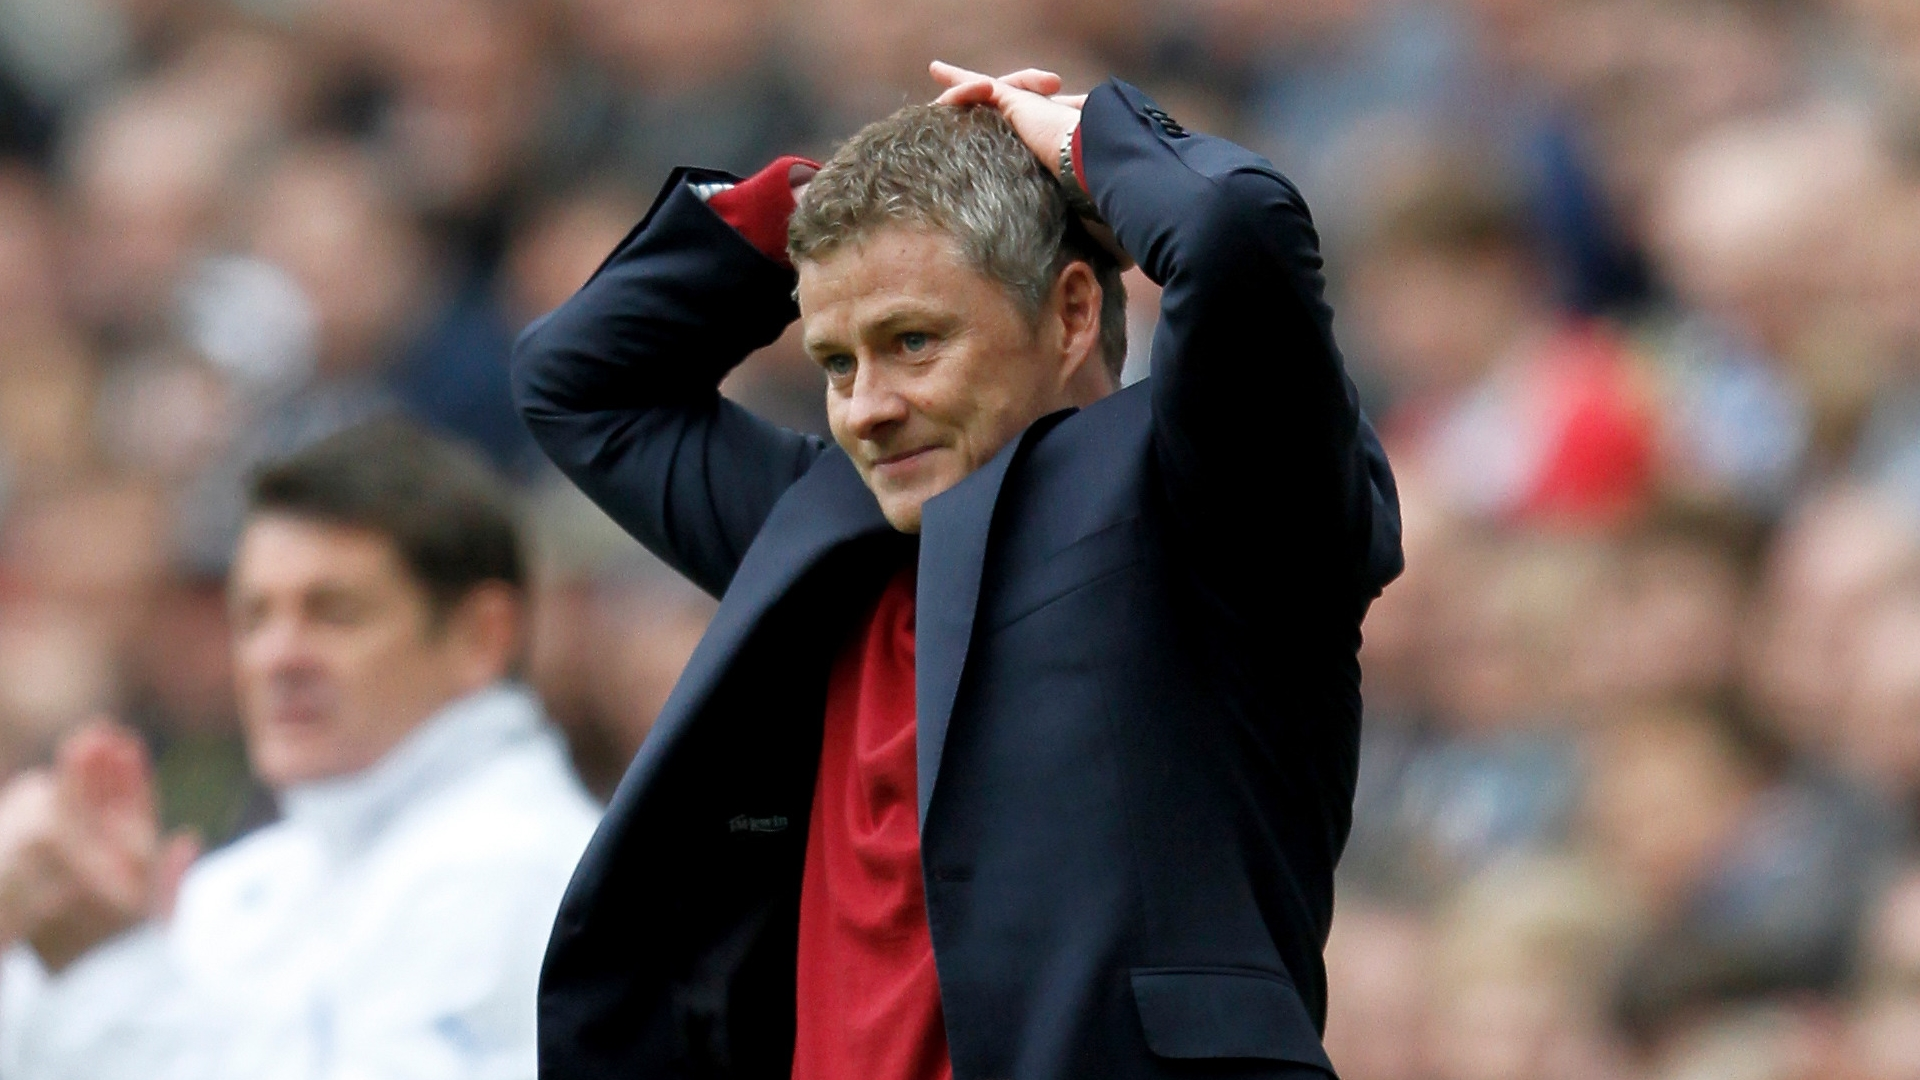 Ole Gunnar Solskjaer critical of 'sloppy' Manchester United""